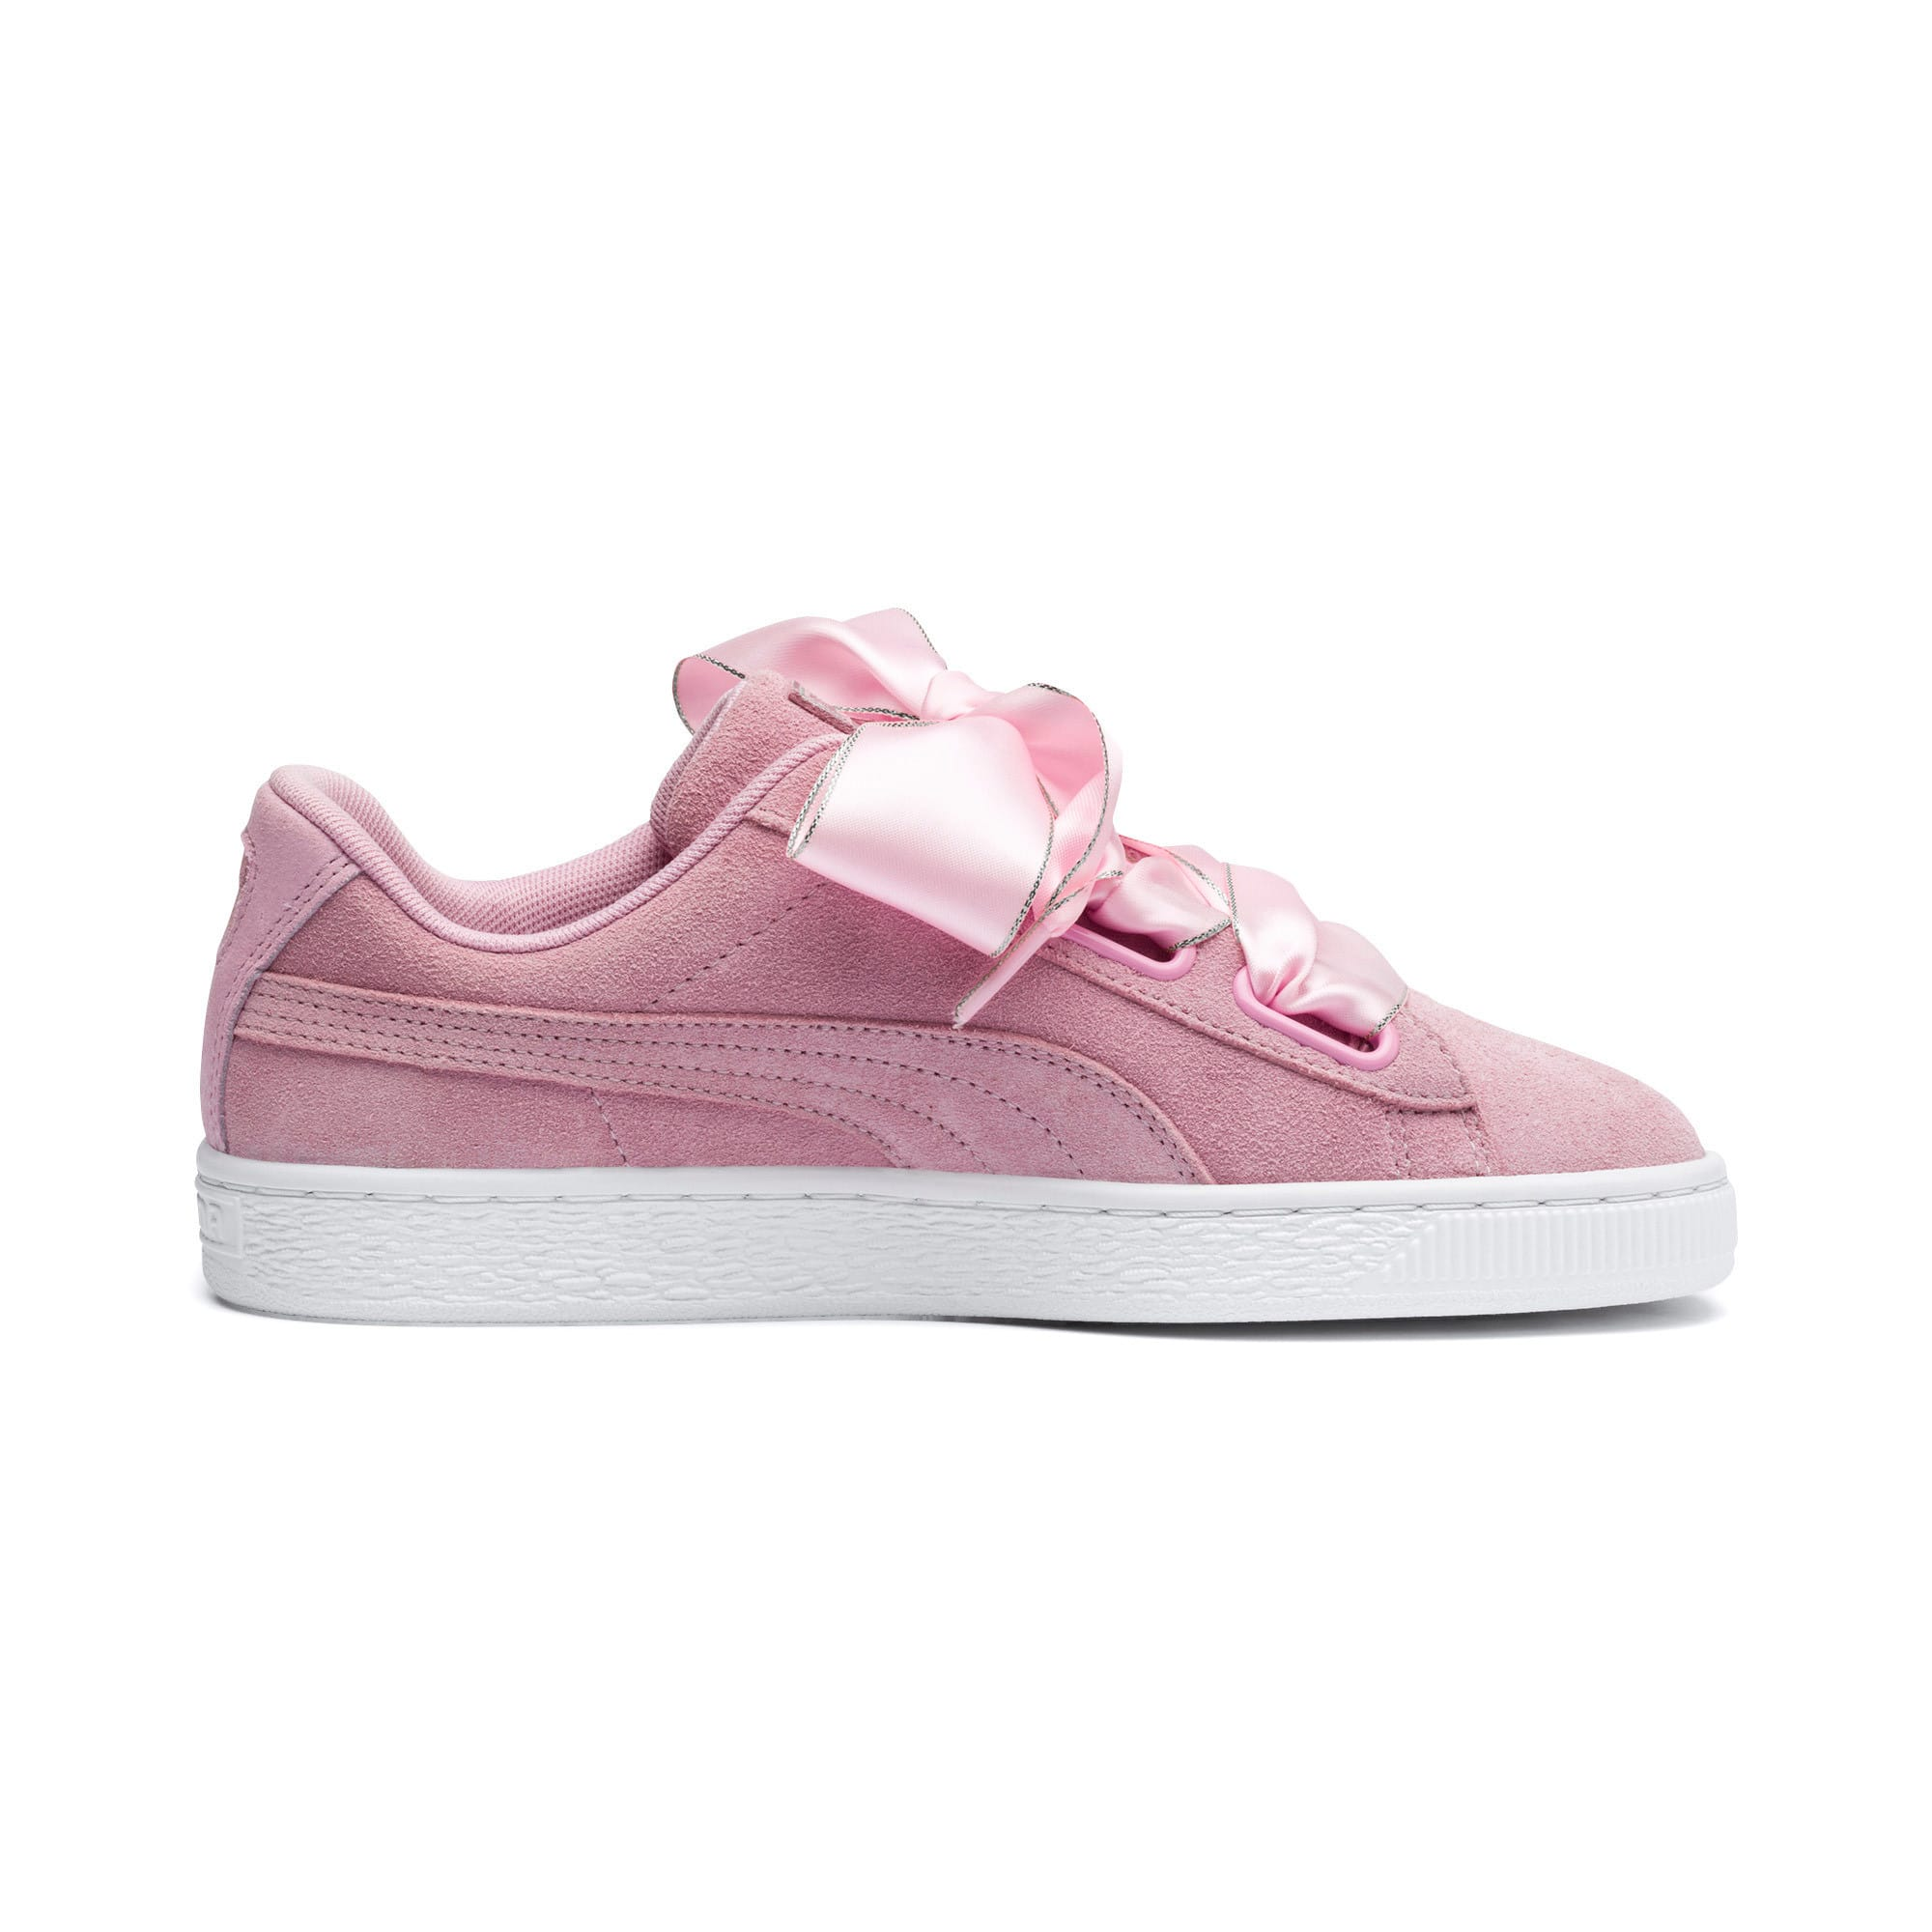 Thumbnail 6 of Suede Heart Galaxy Women's Shoes, Pale Pink-Puma Silver, medium-IND